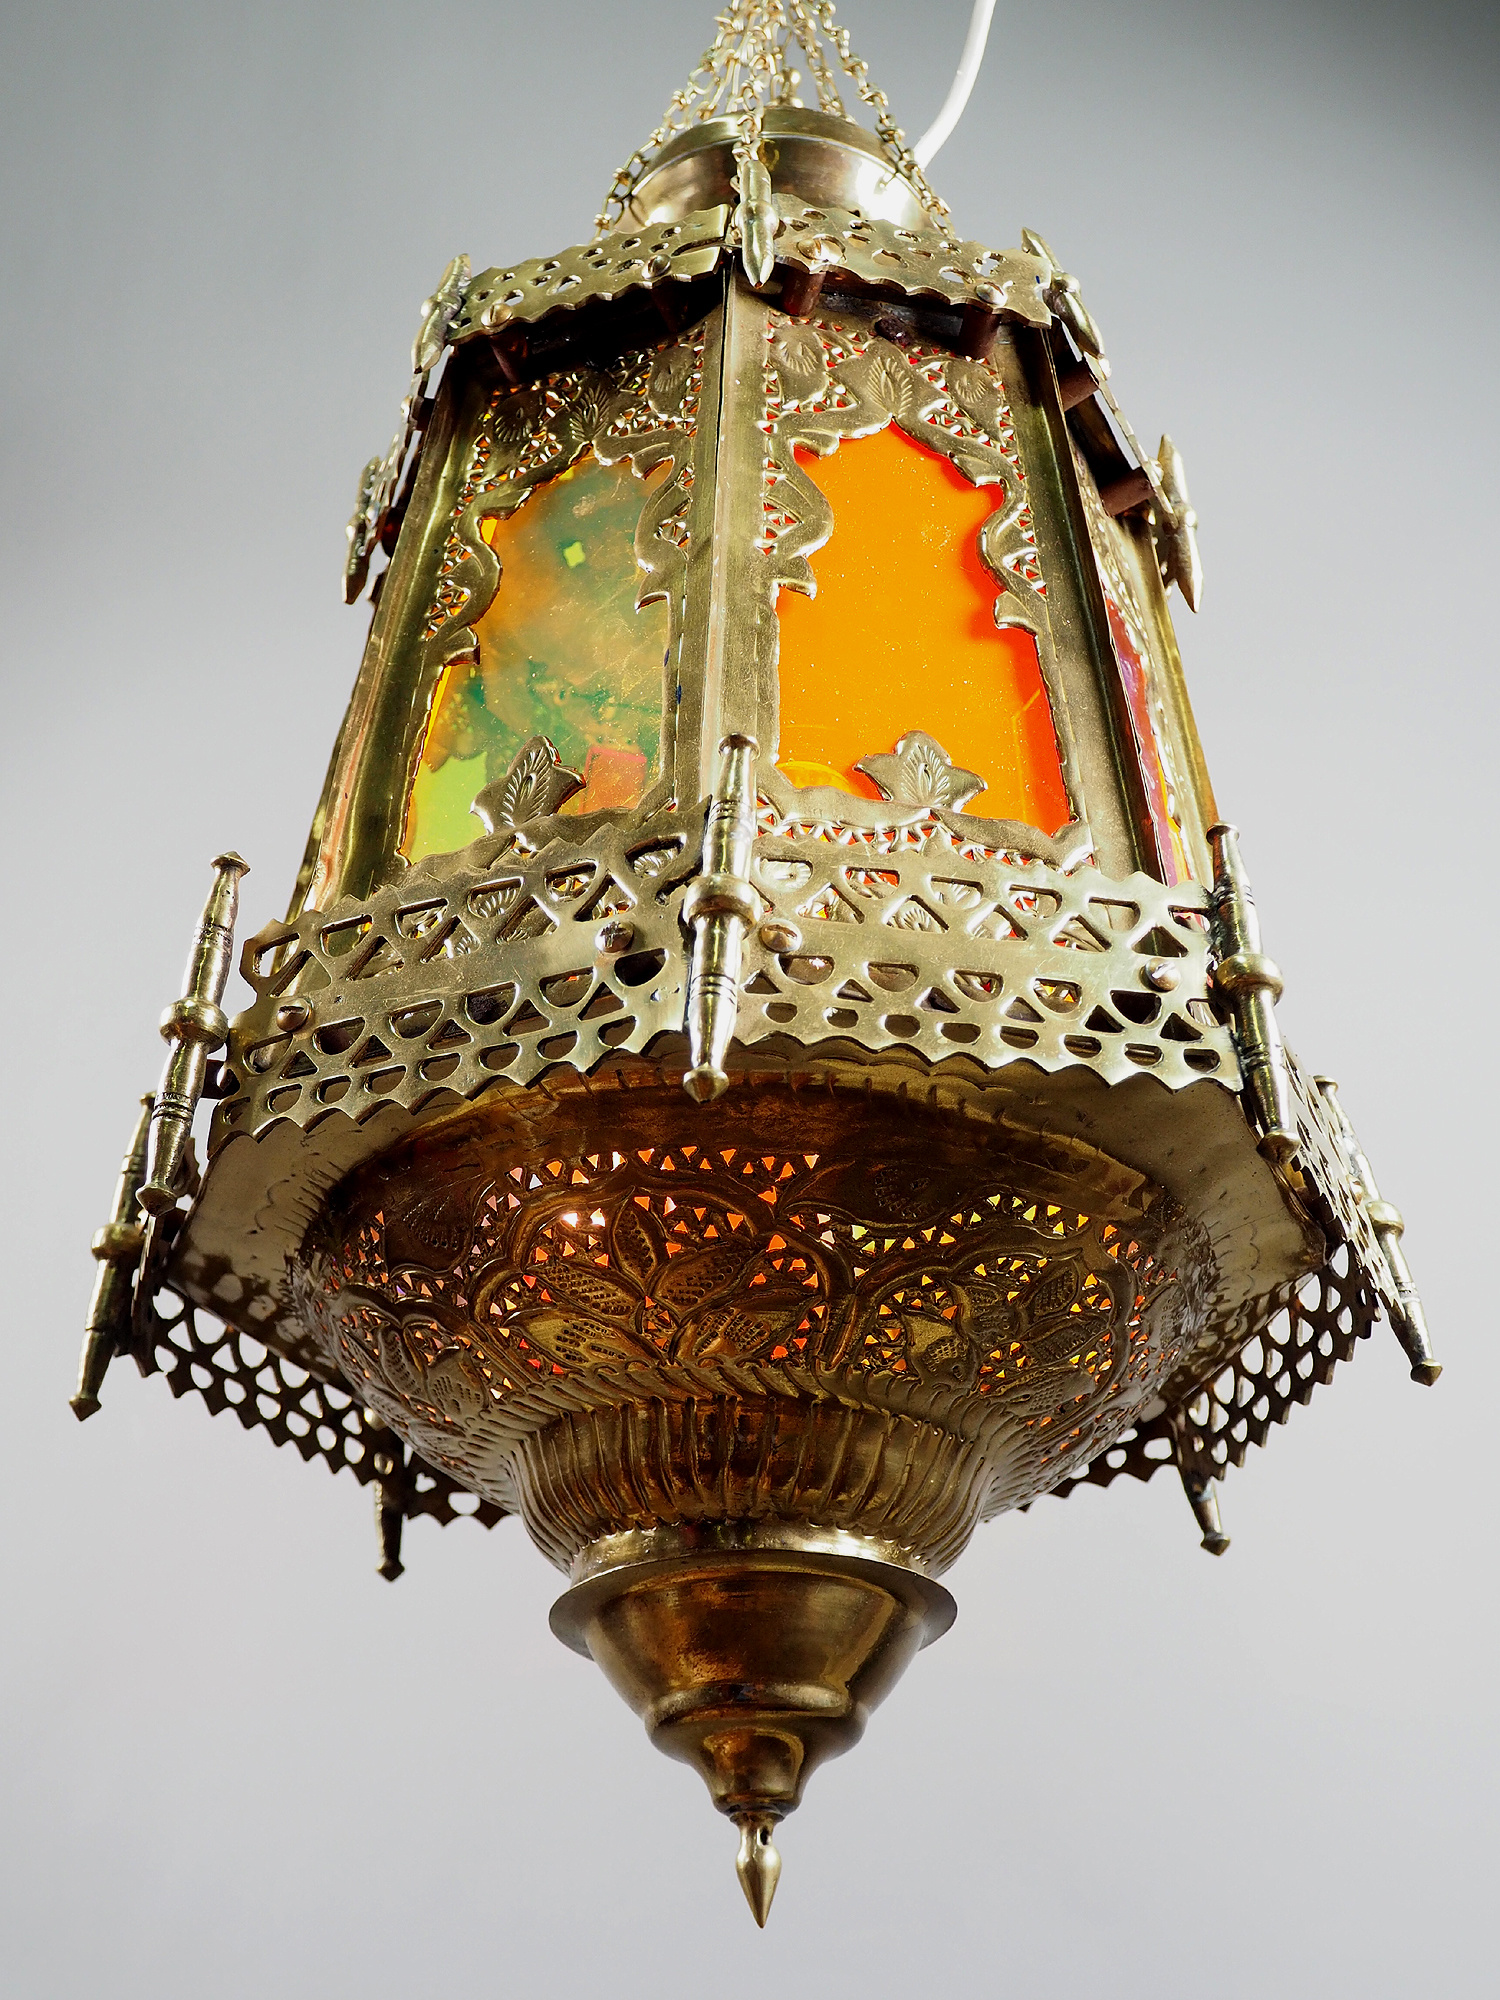 Egyptian Morocco Middle Eastern / Islamic Brass Hanging Mosque Lamp  Ceiling lamp from Afghanistan rainbow